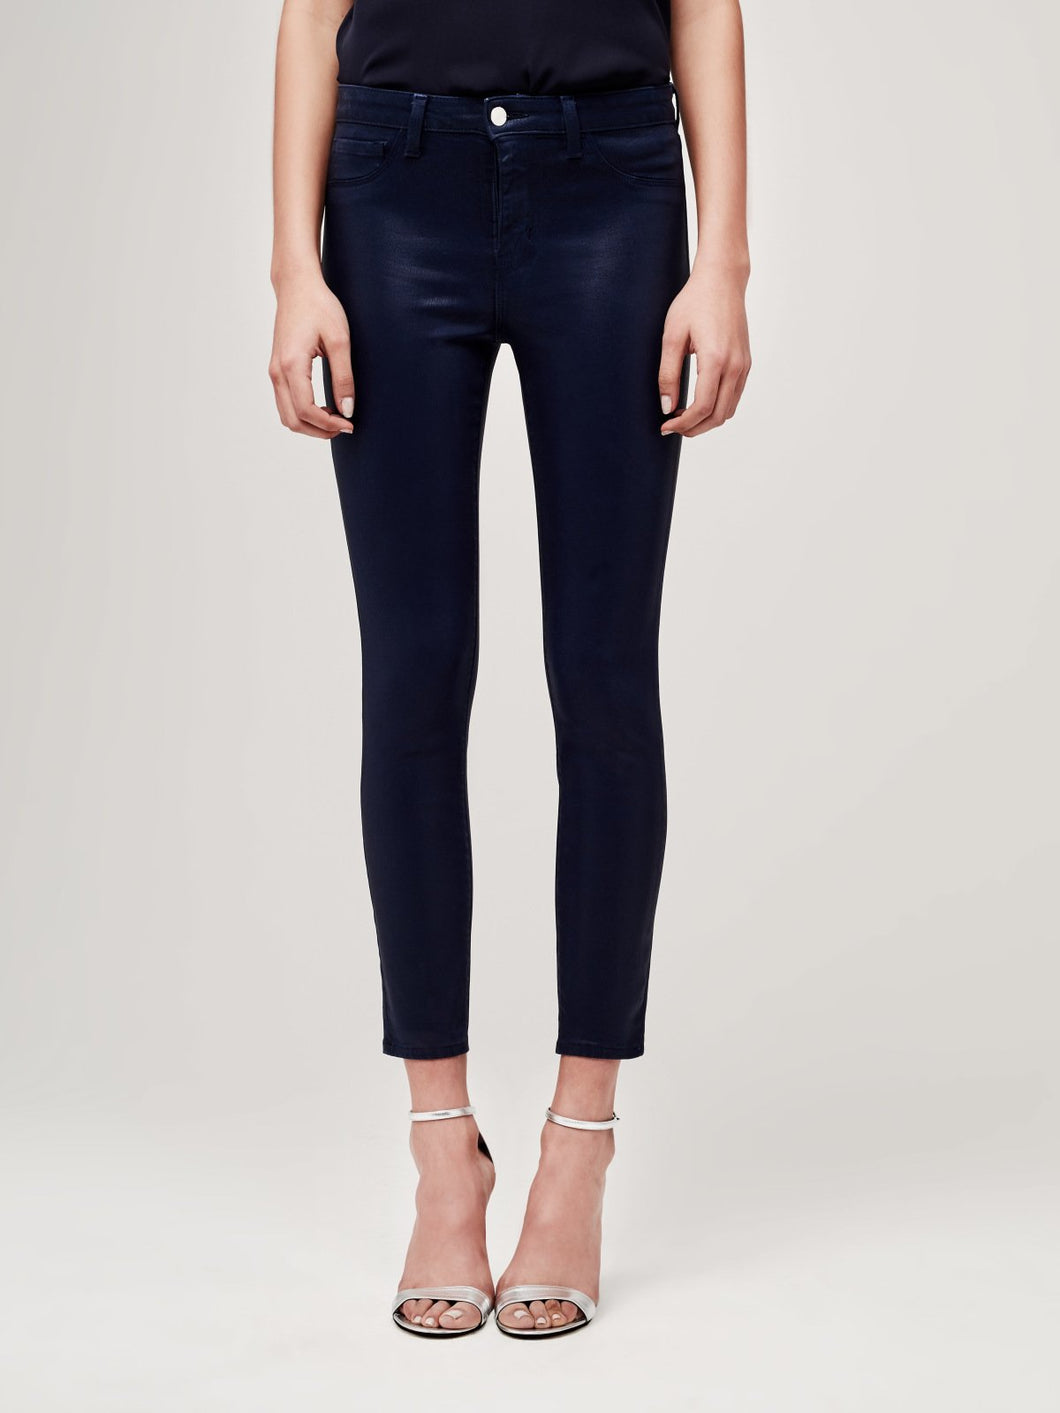 Margot Navy Coated Jean